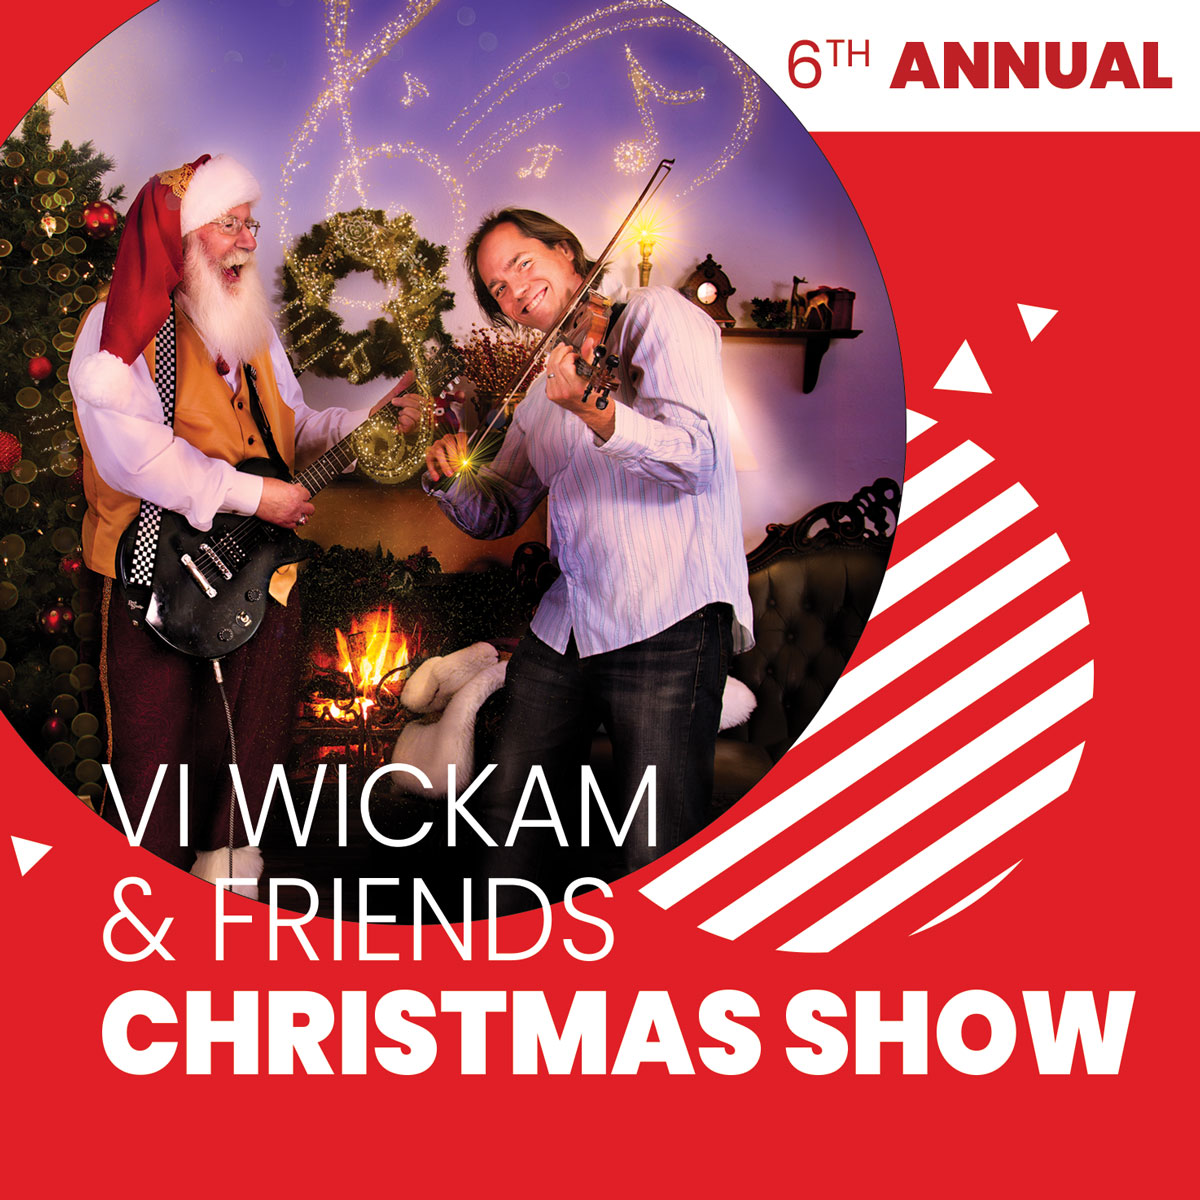 Vi Wickam and Friends 6th Annual Christmas Show